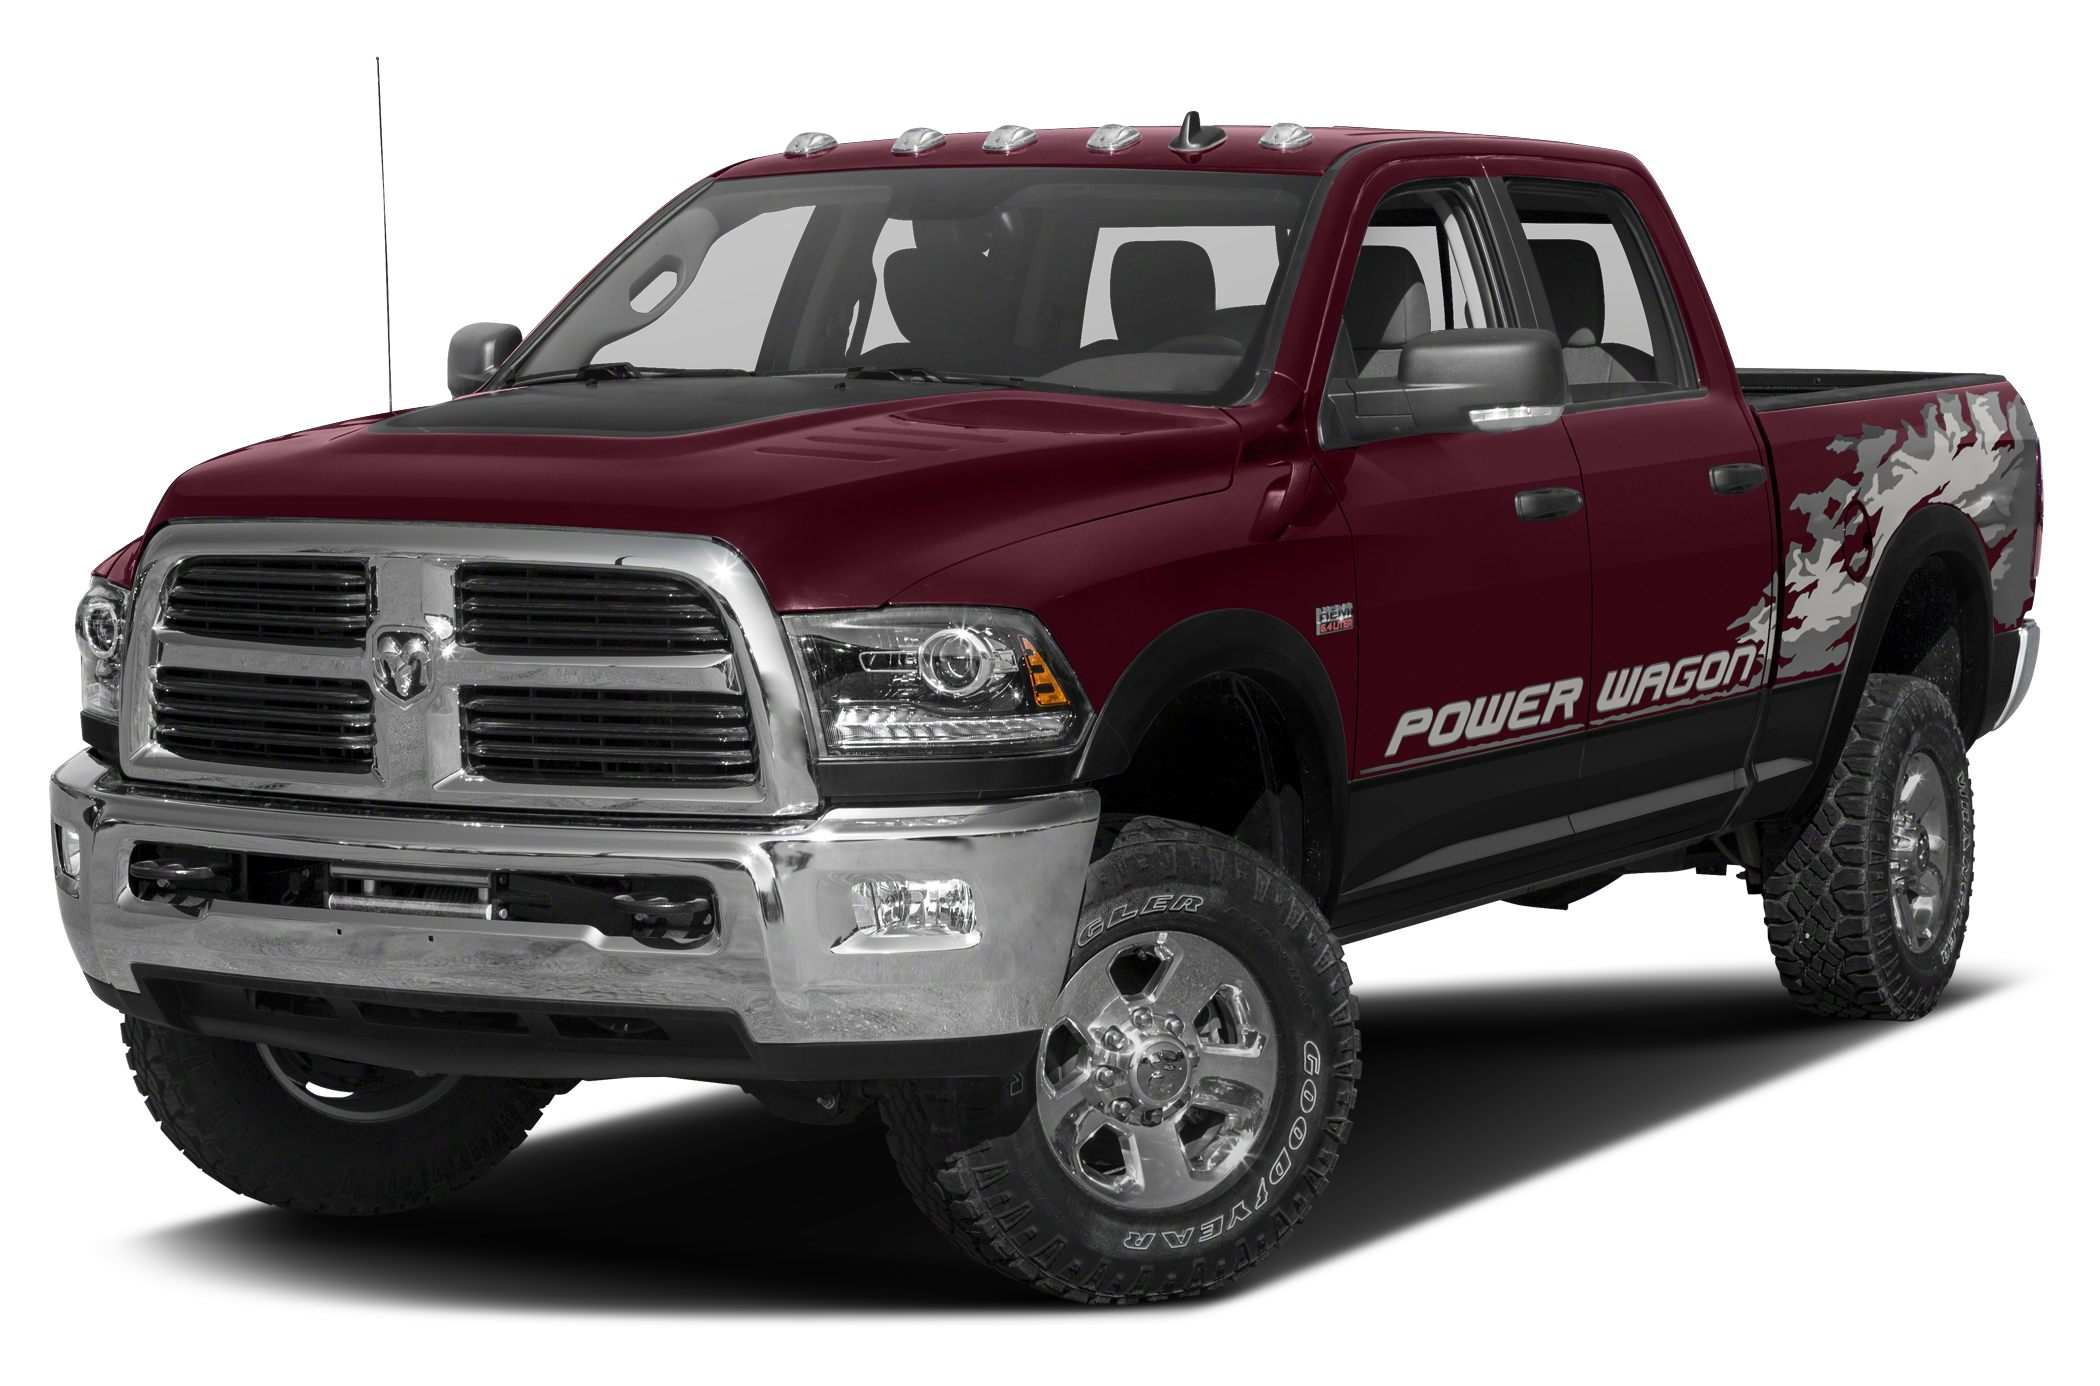 2016 RAM 2500 Power Wagon New Arrival Priced to sell at 2403 below the market average This mod